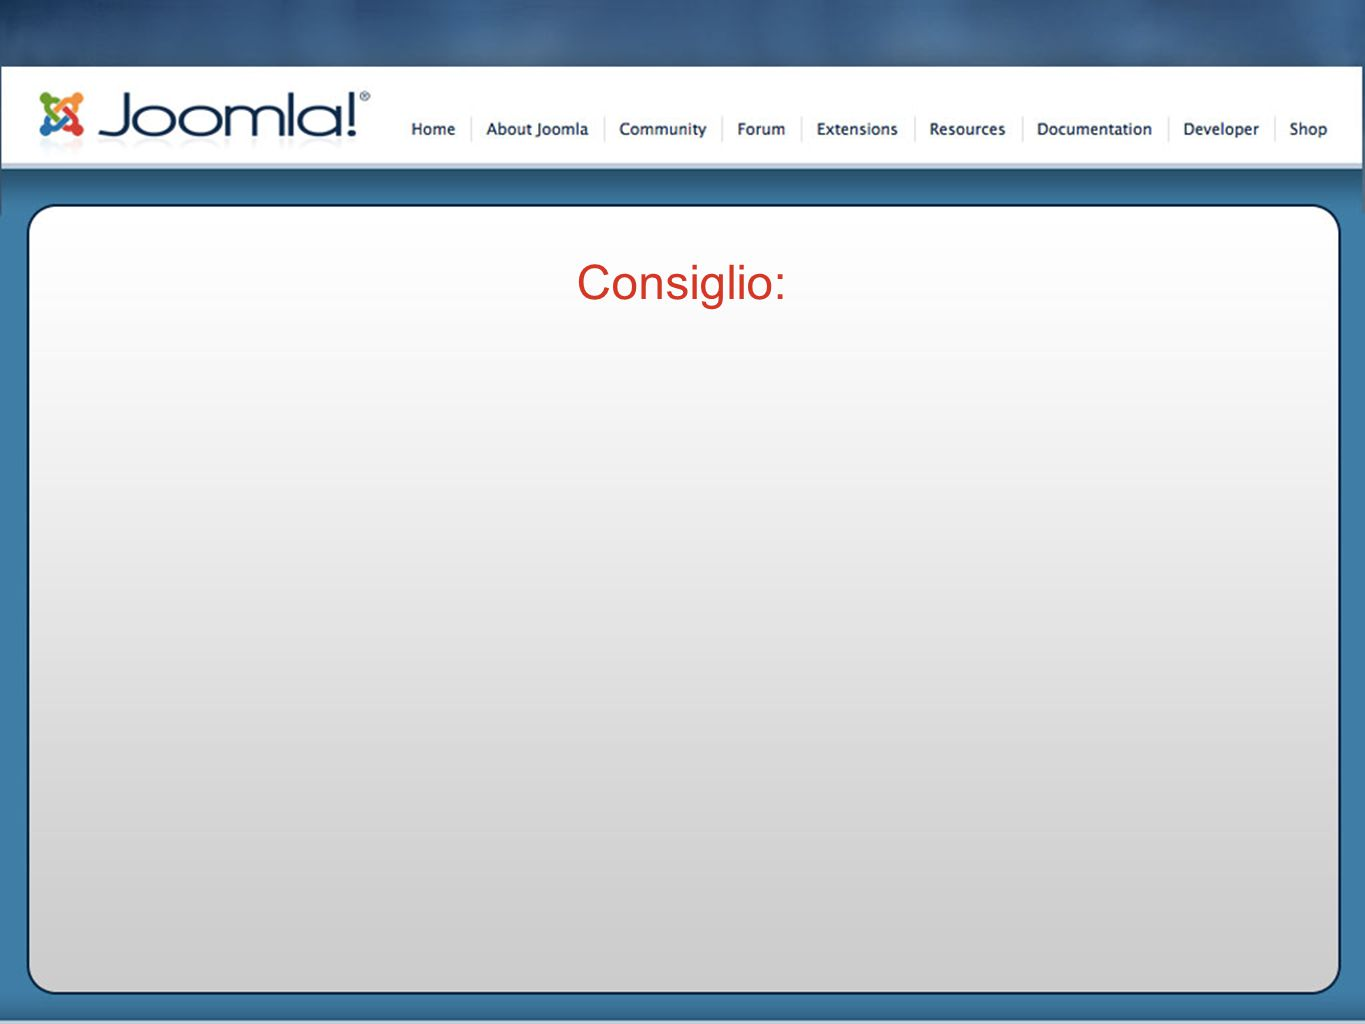 Sempre in Configurazione Globale, Sef Url: Rinominare il file htaccess.txt in.htaccess